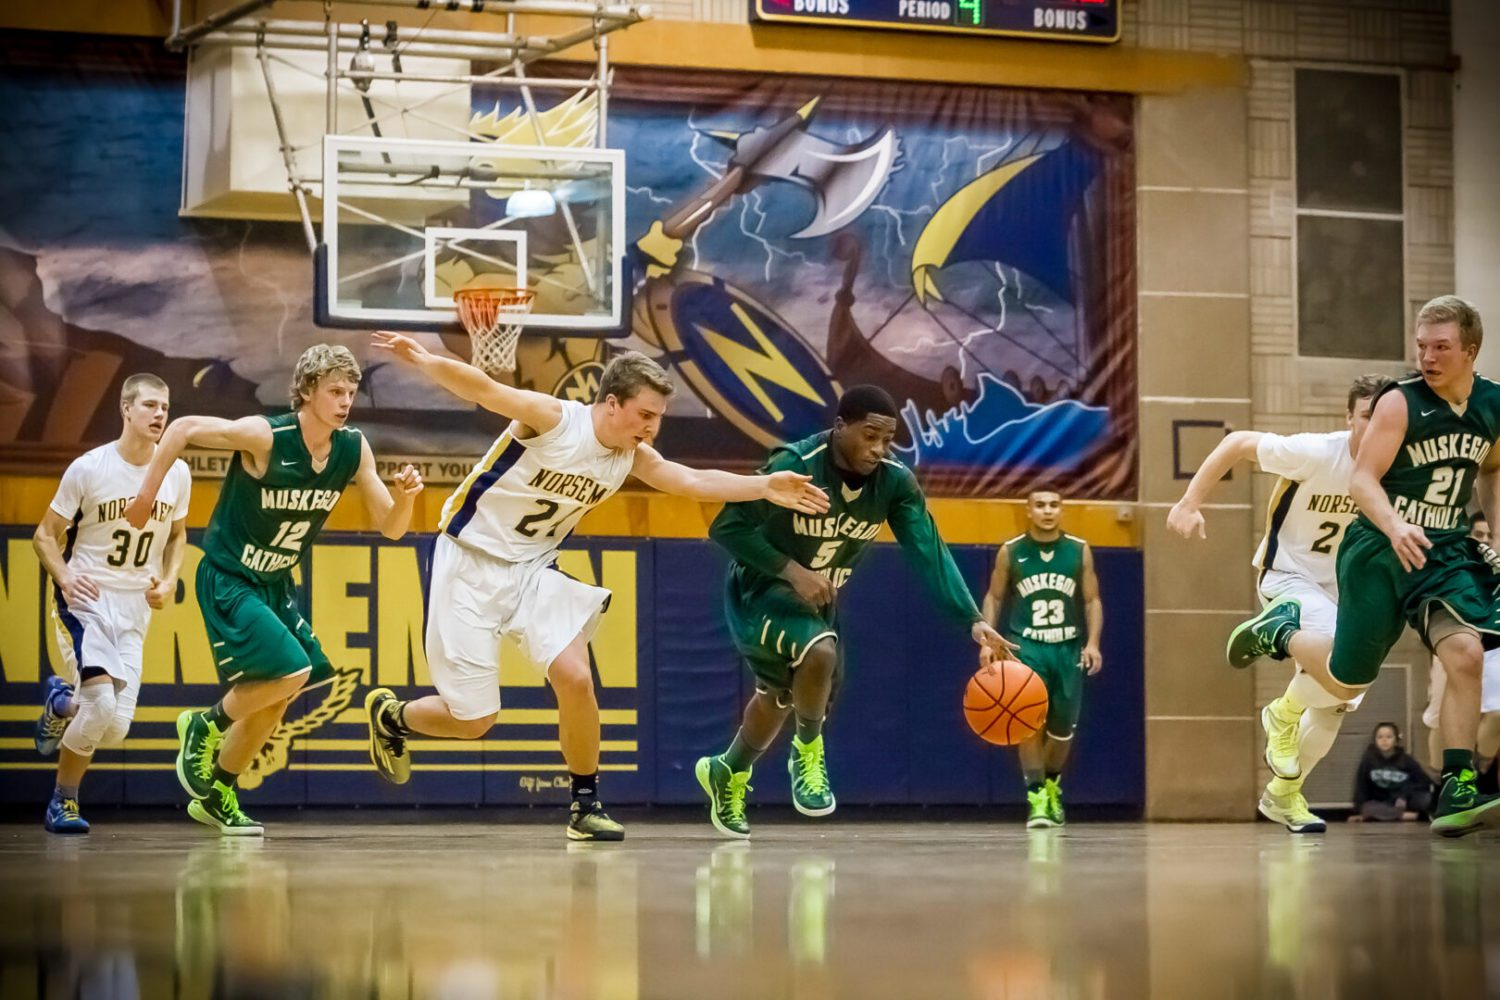 Tommy Scott's layup in the final seconds gives MCC a 47-46 basketball victory over North Muskegon